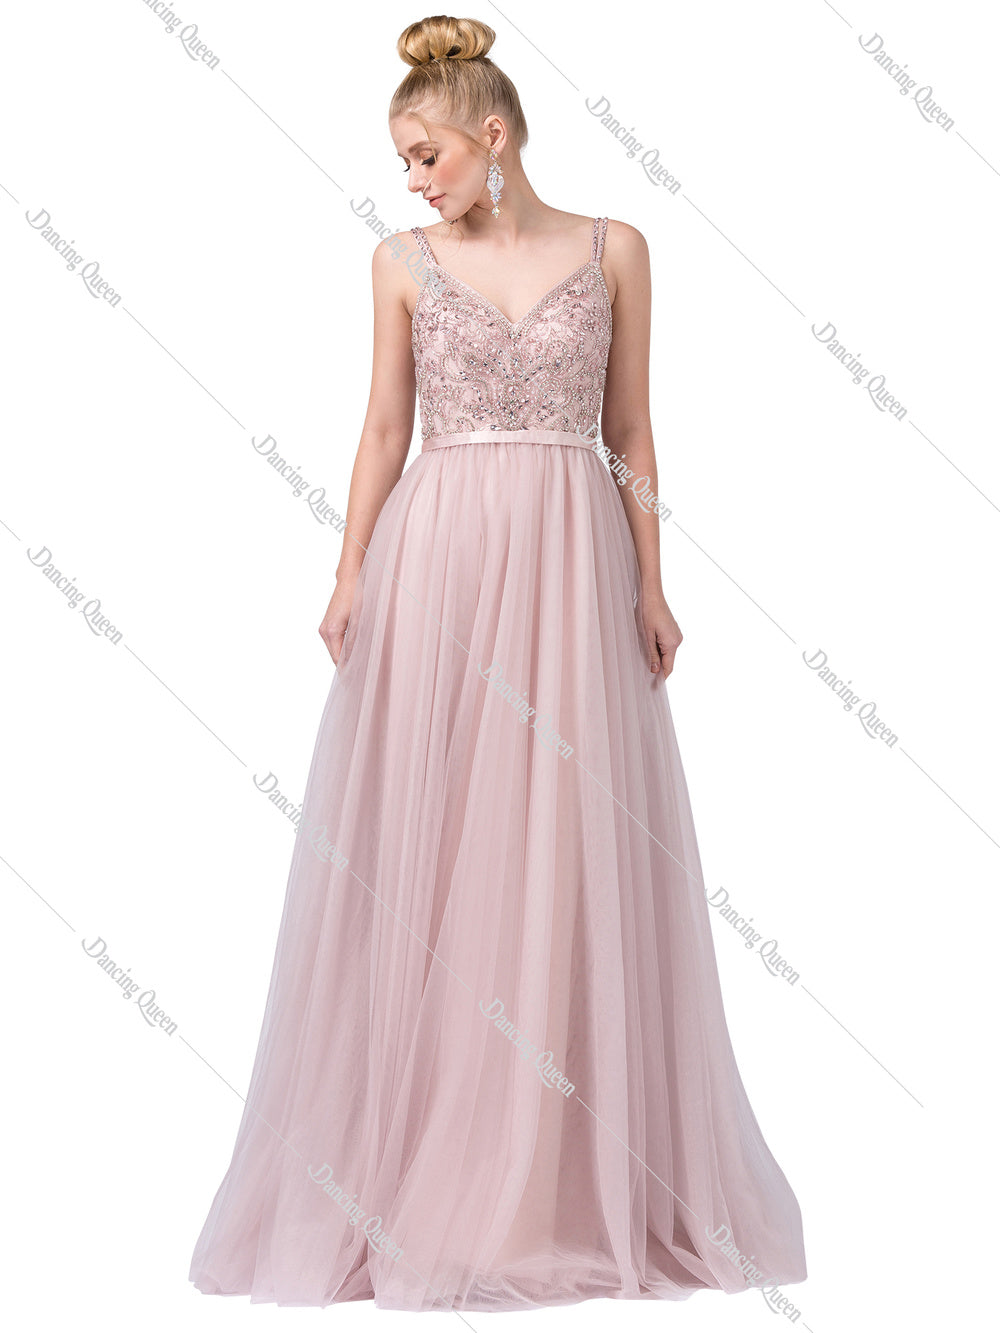 Dancing Queen DQ 2519 - A-Line Bead Embellished V-neck Bodice with Tulle Skirt - Diggz Prom